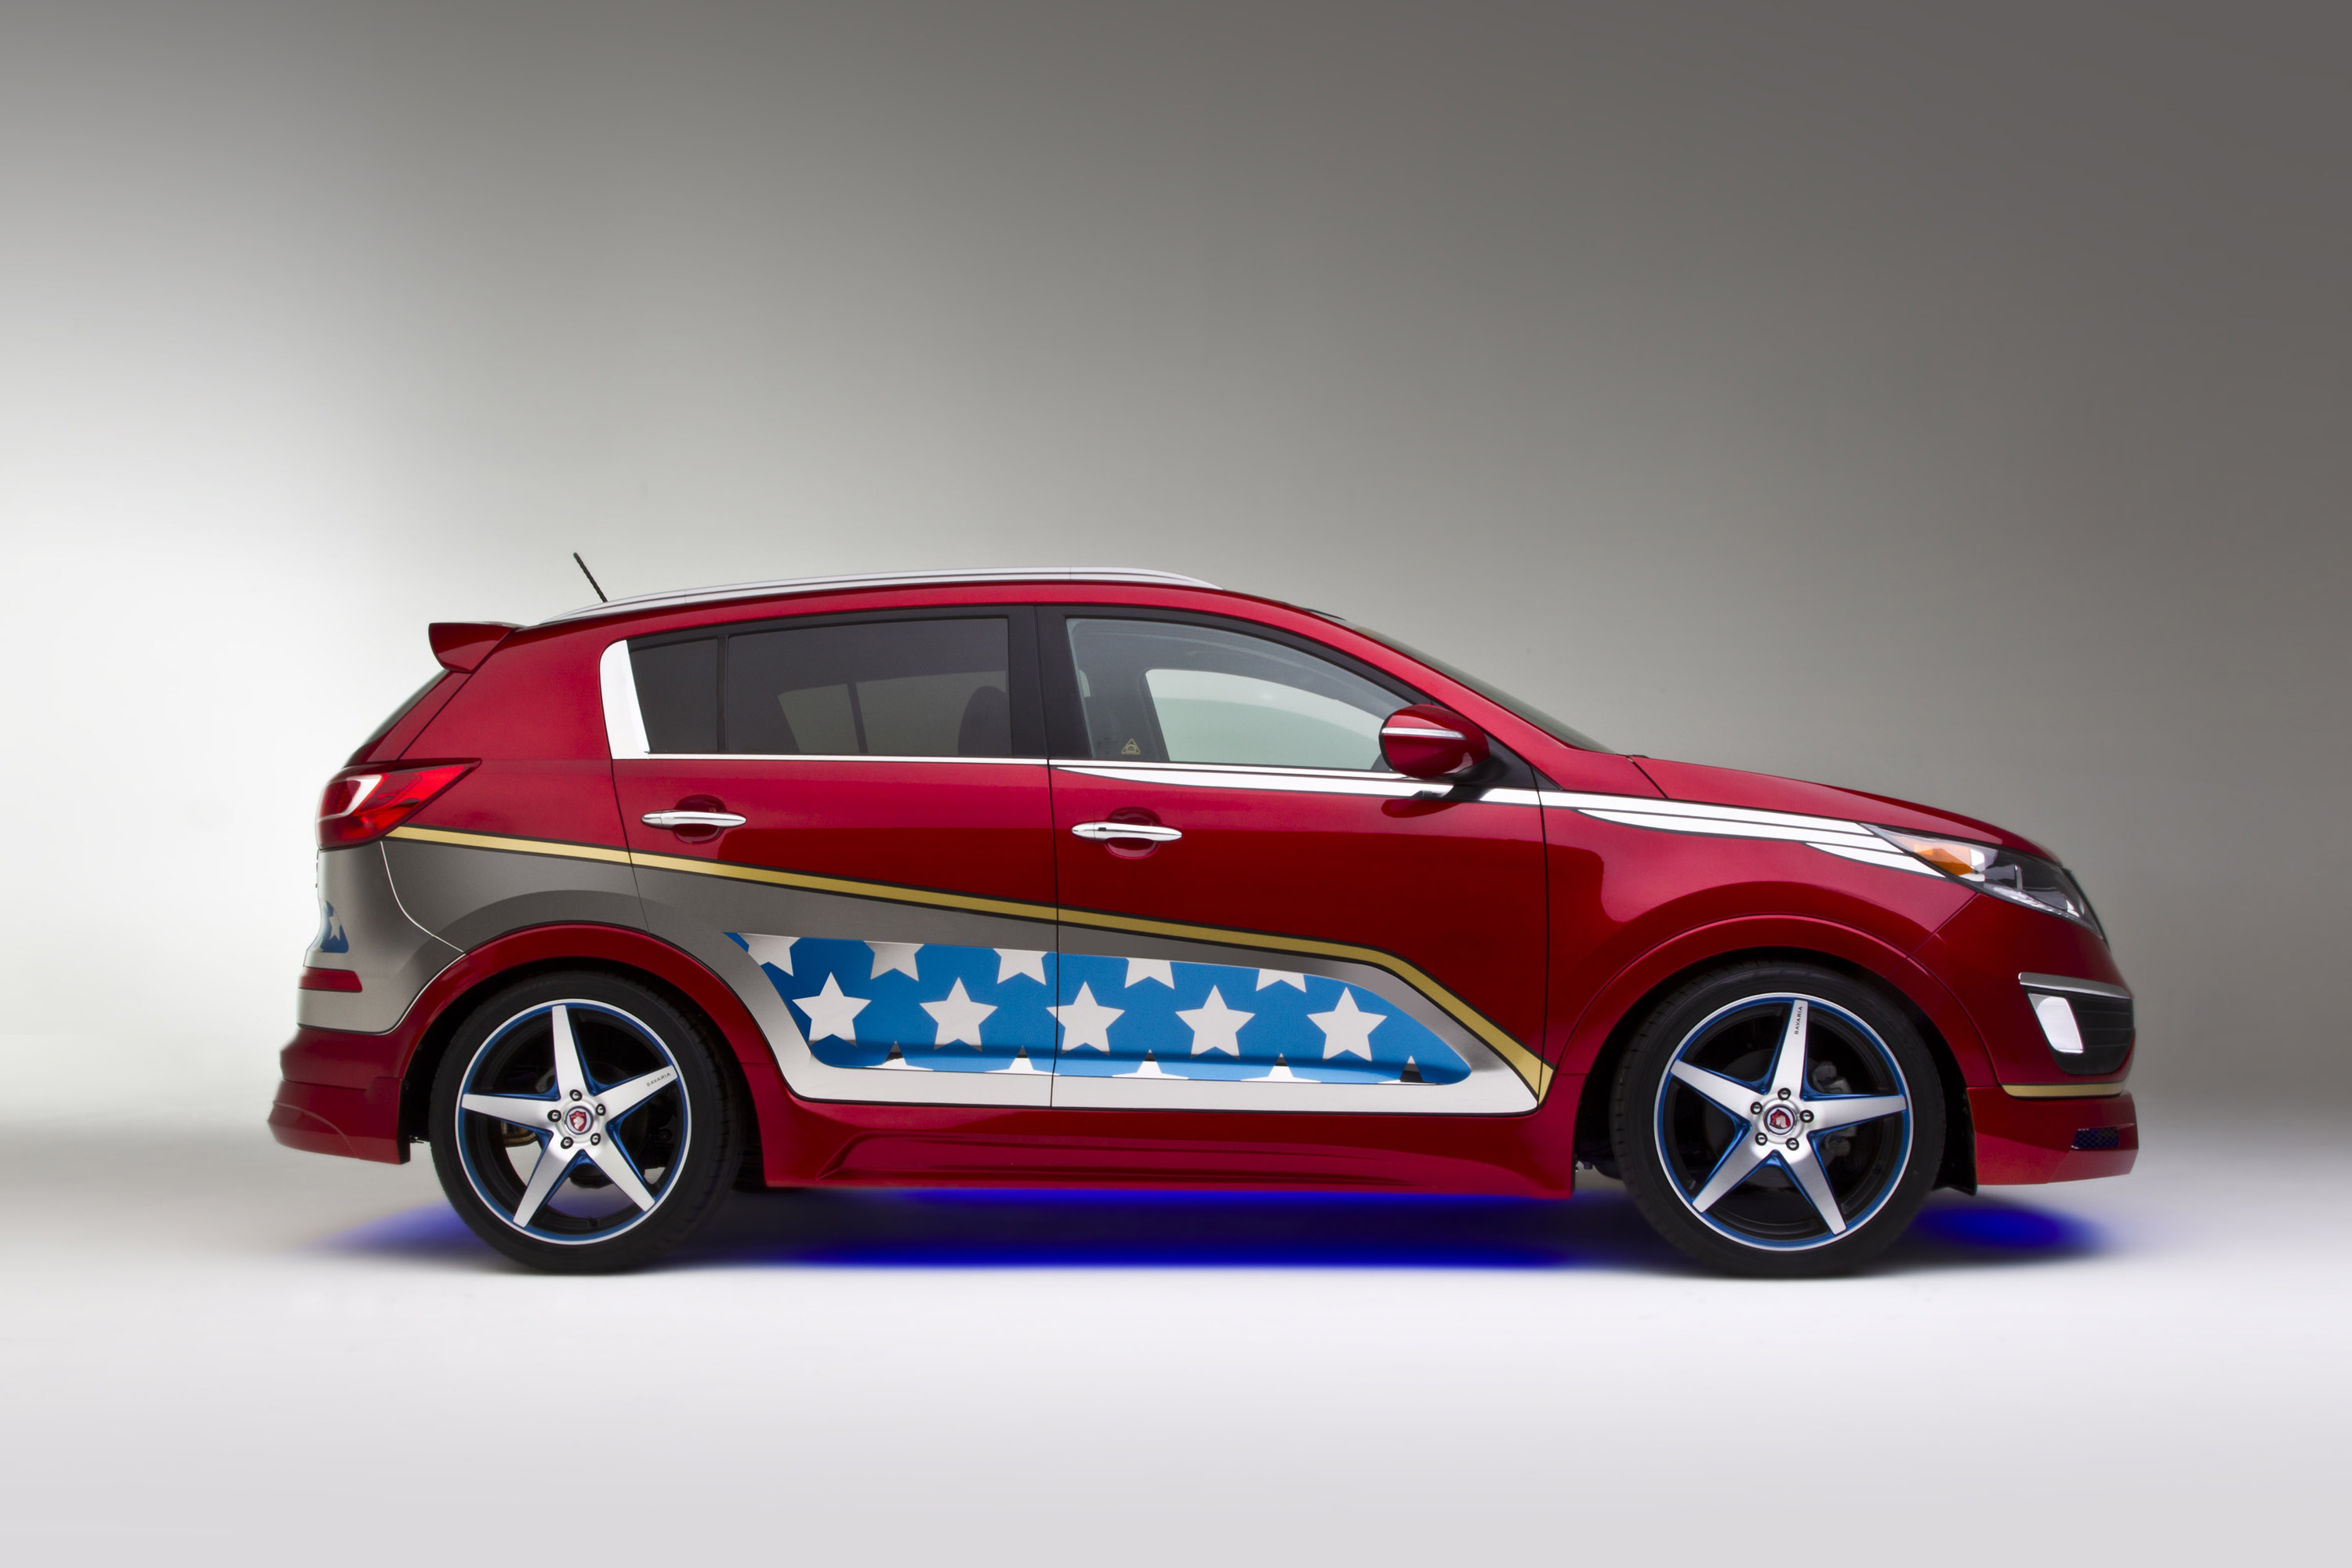 Wonder Woman Kia Sportage Adds To The We Can Be Heroes